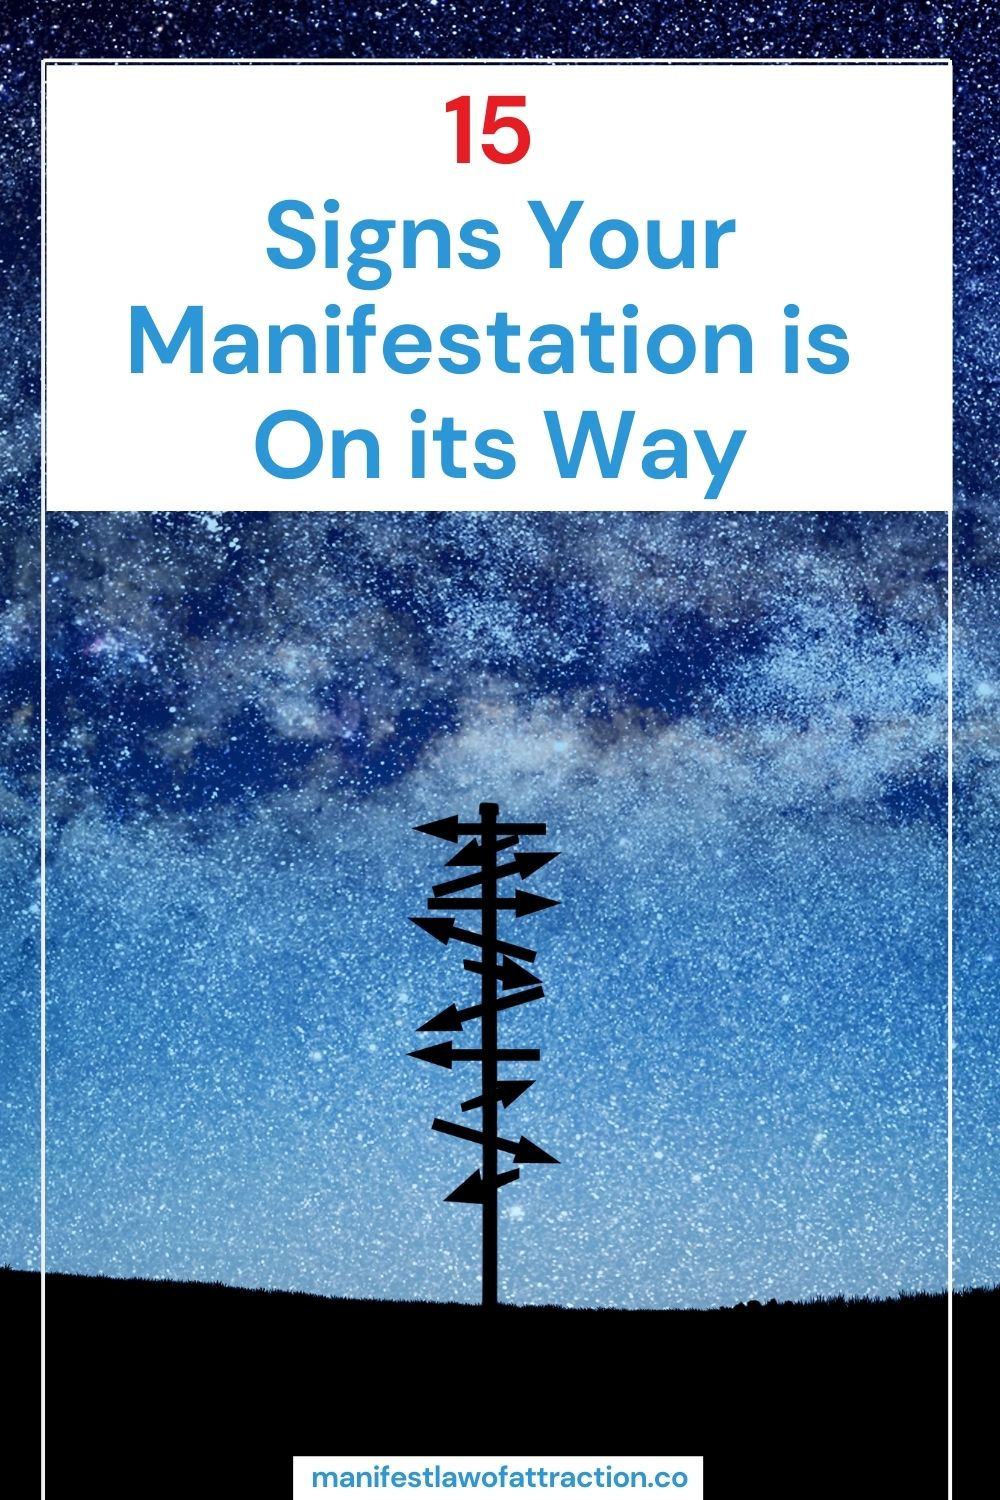 15 Signs Your Manifestation is On its Way (1)